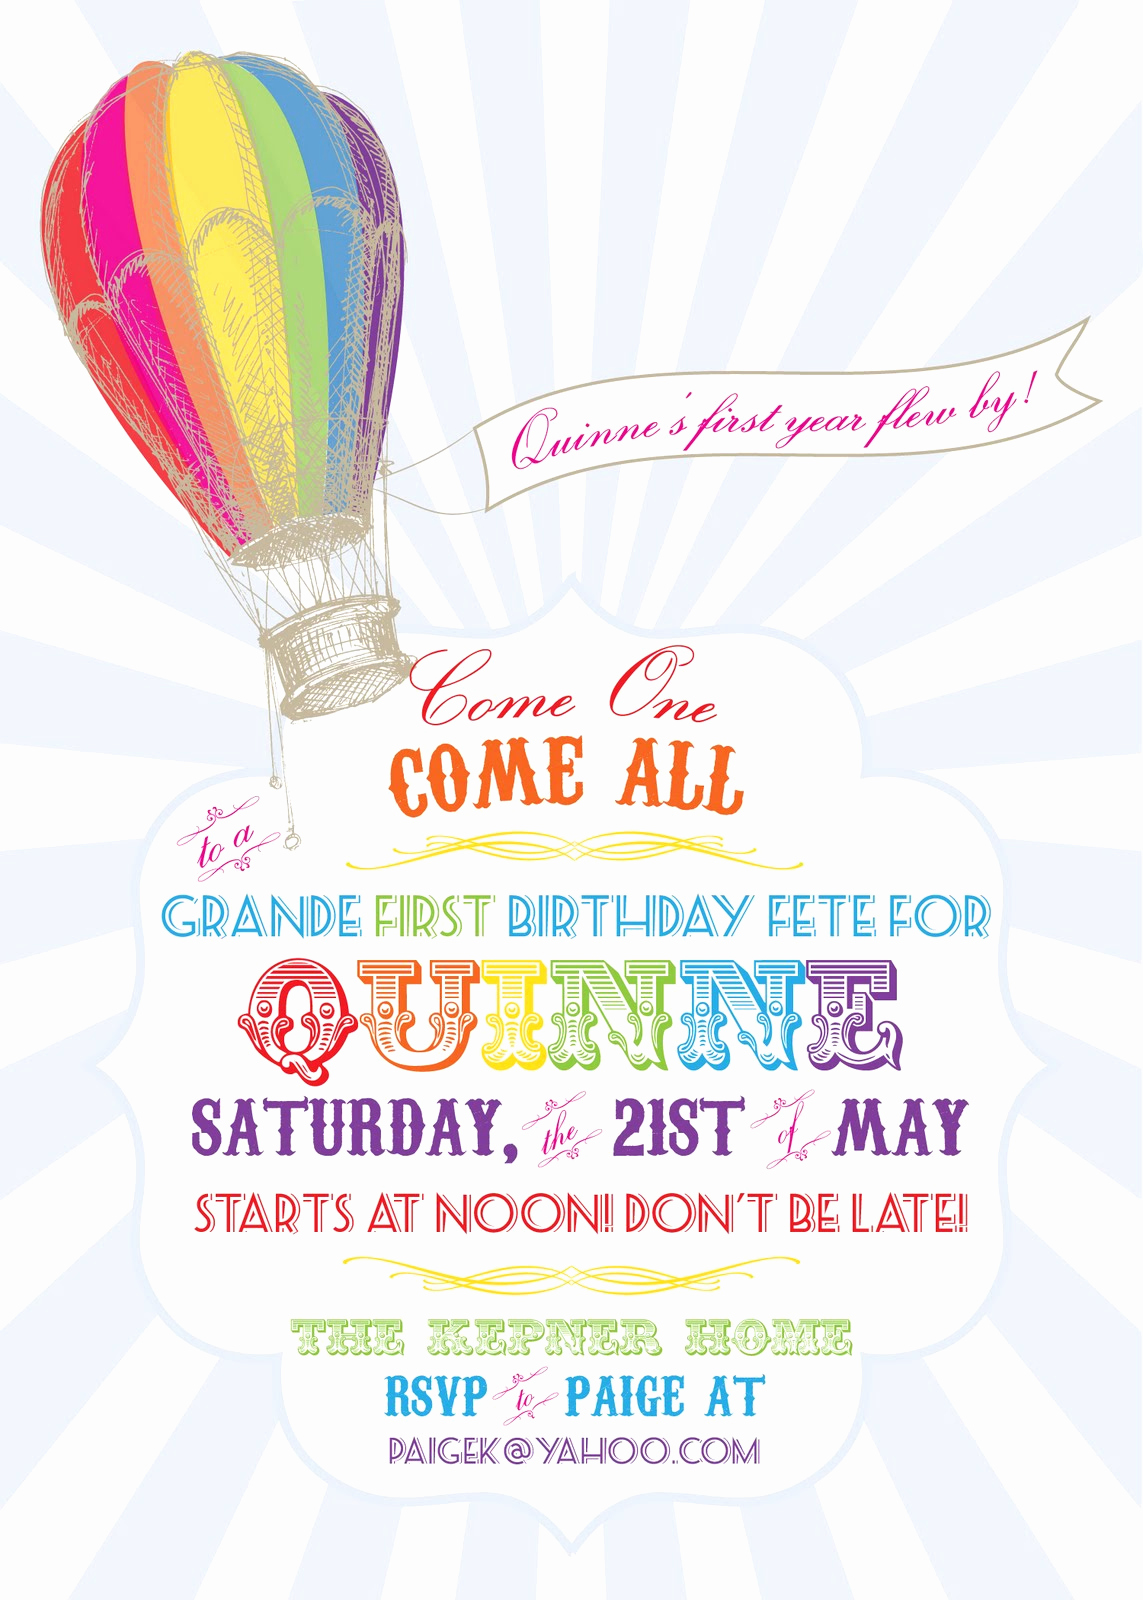 Hot Air Balloon Invitation Fresh Paiges Of Style Hot Air Balloon Invitaton Available In My